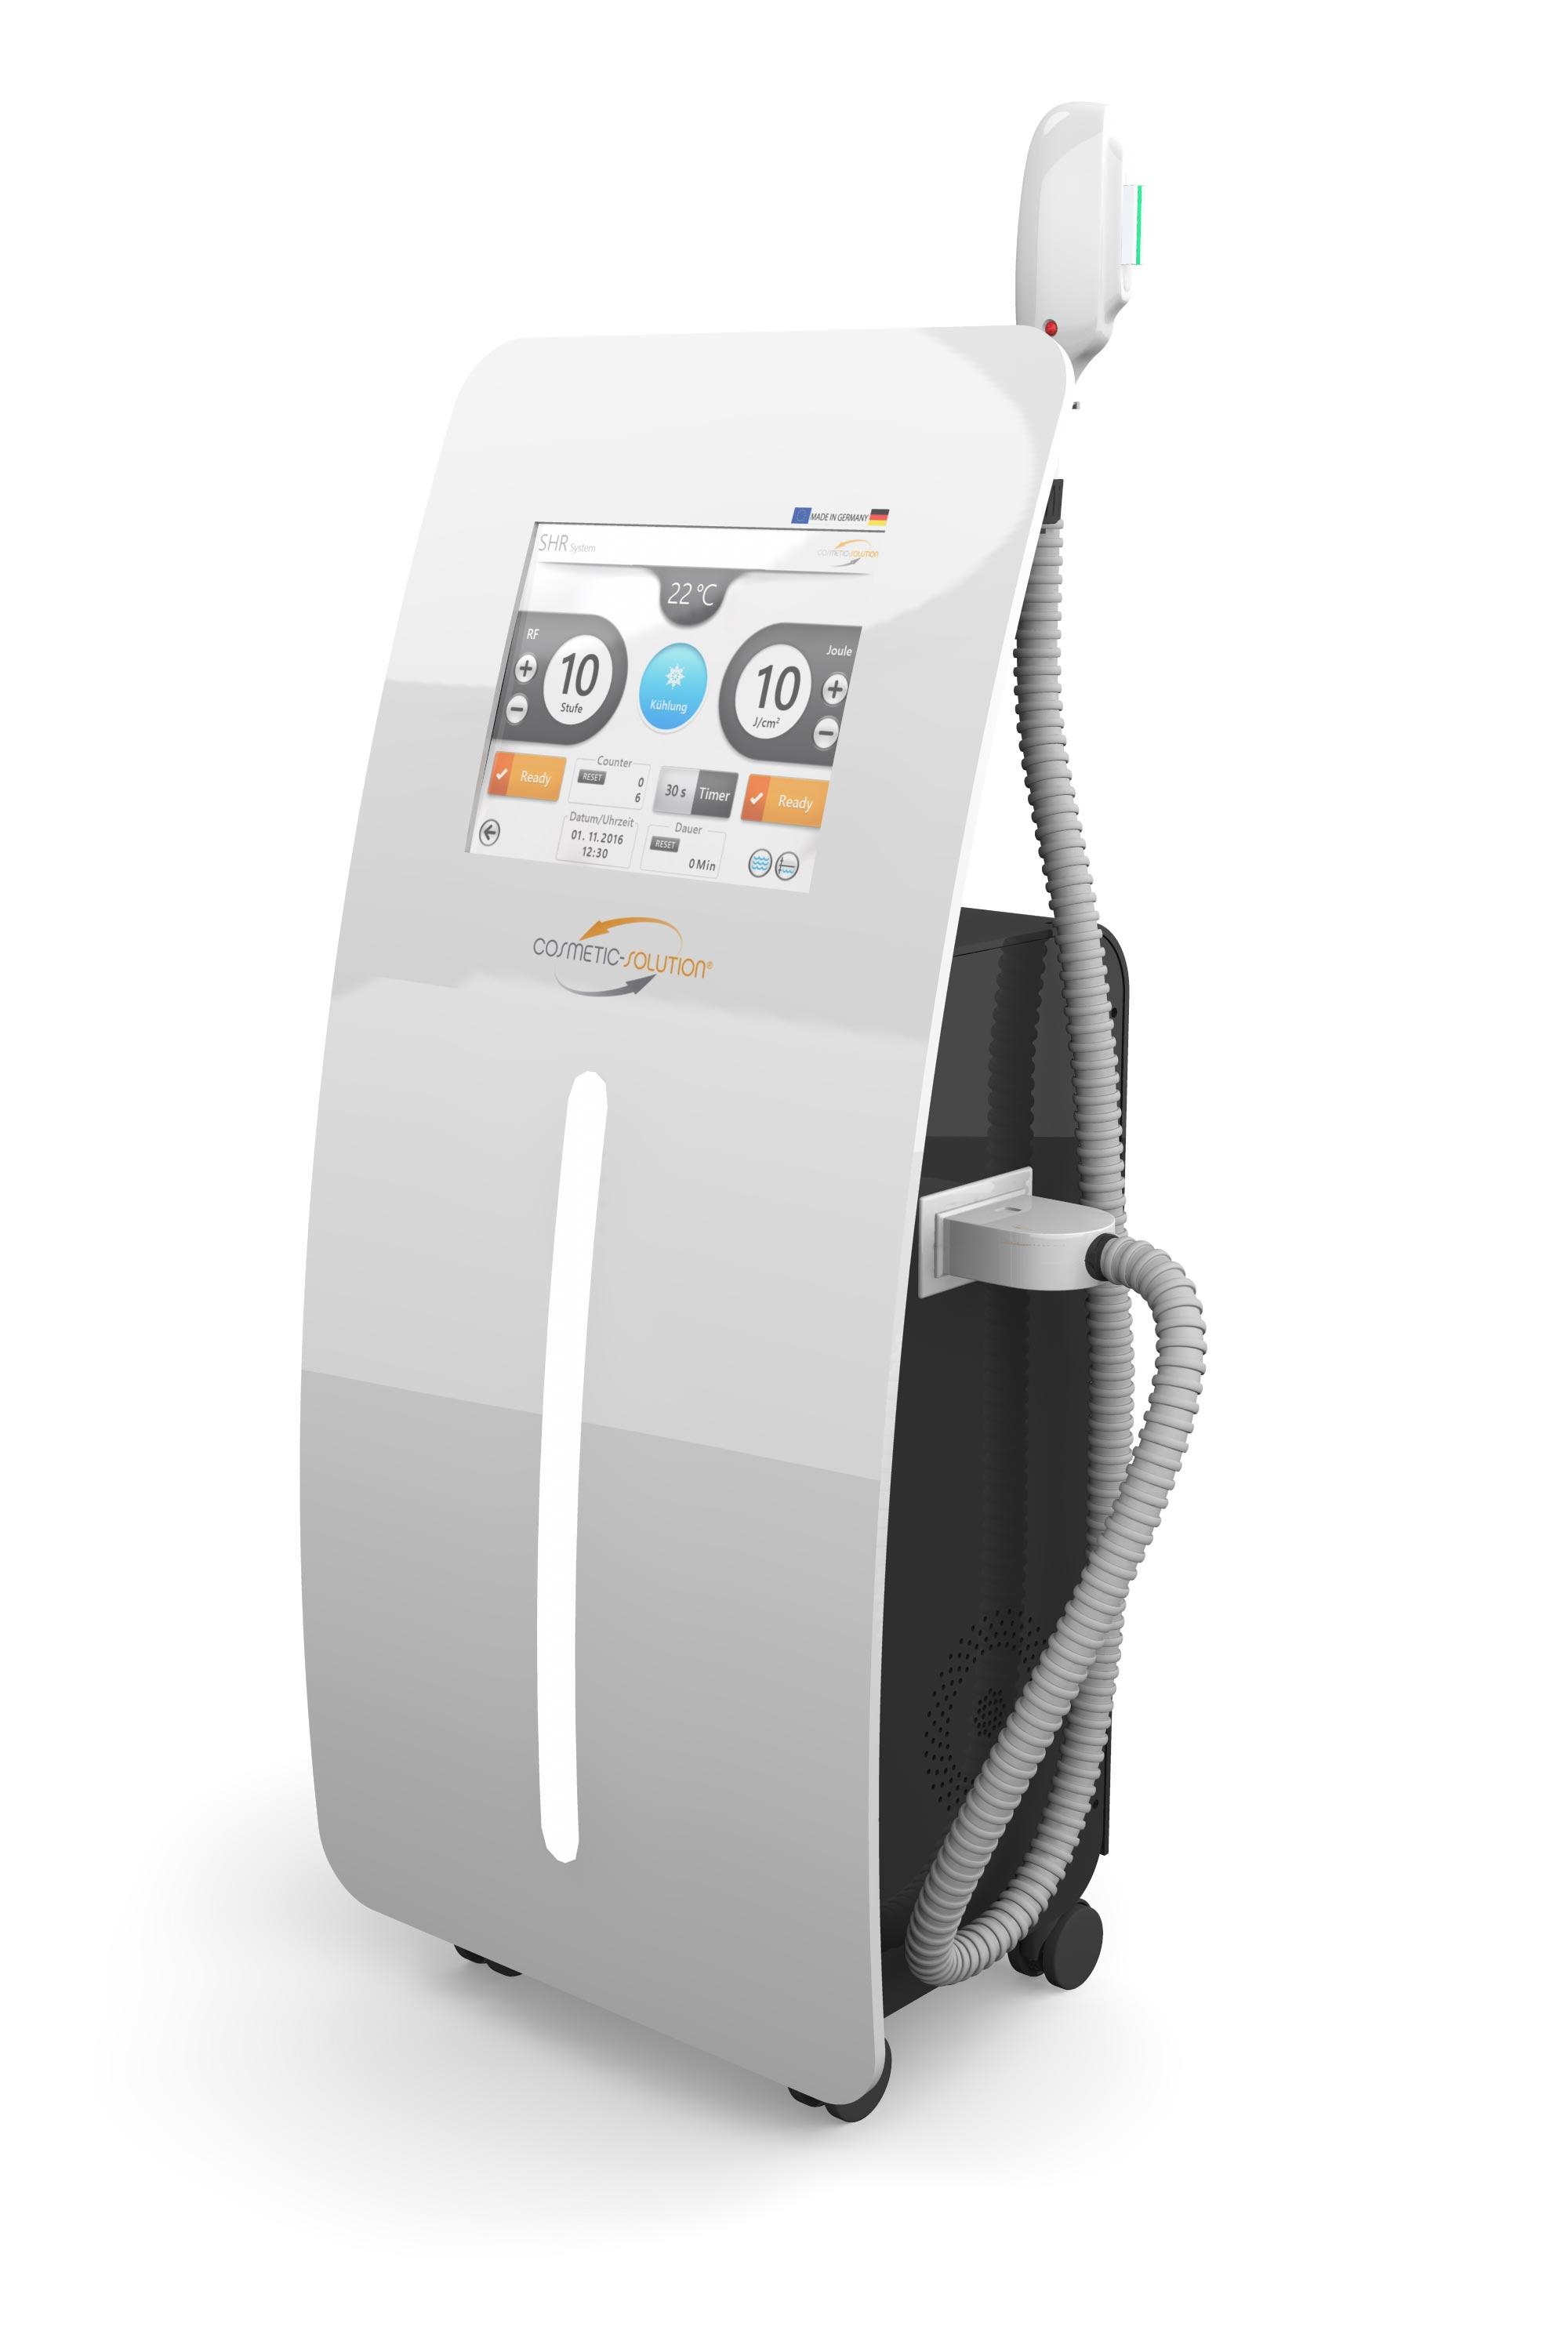 Tio Plus SHR-IPL device for permanent hair removal